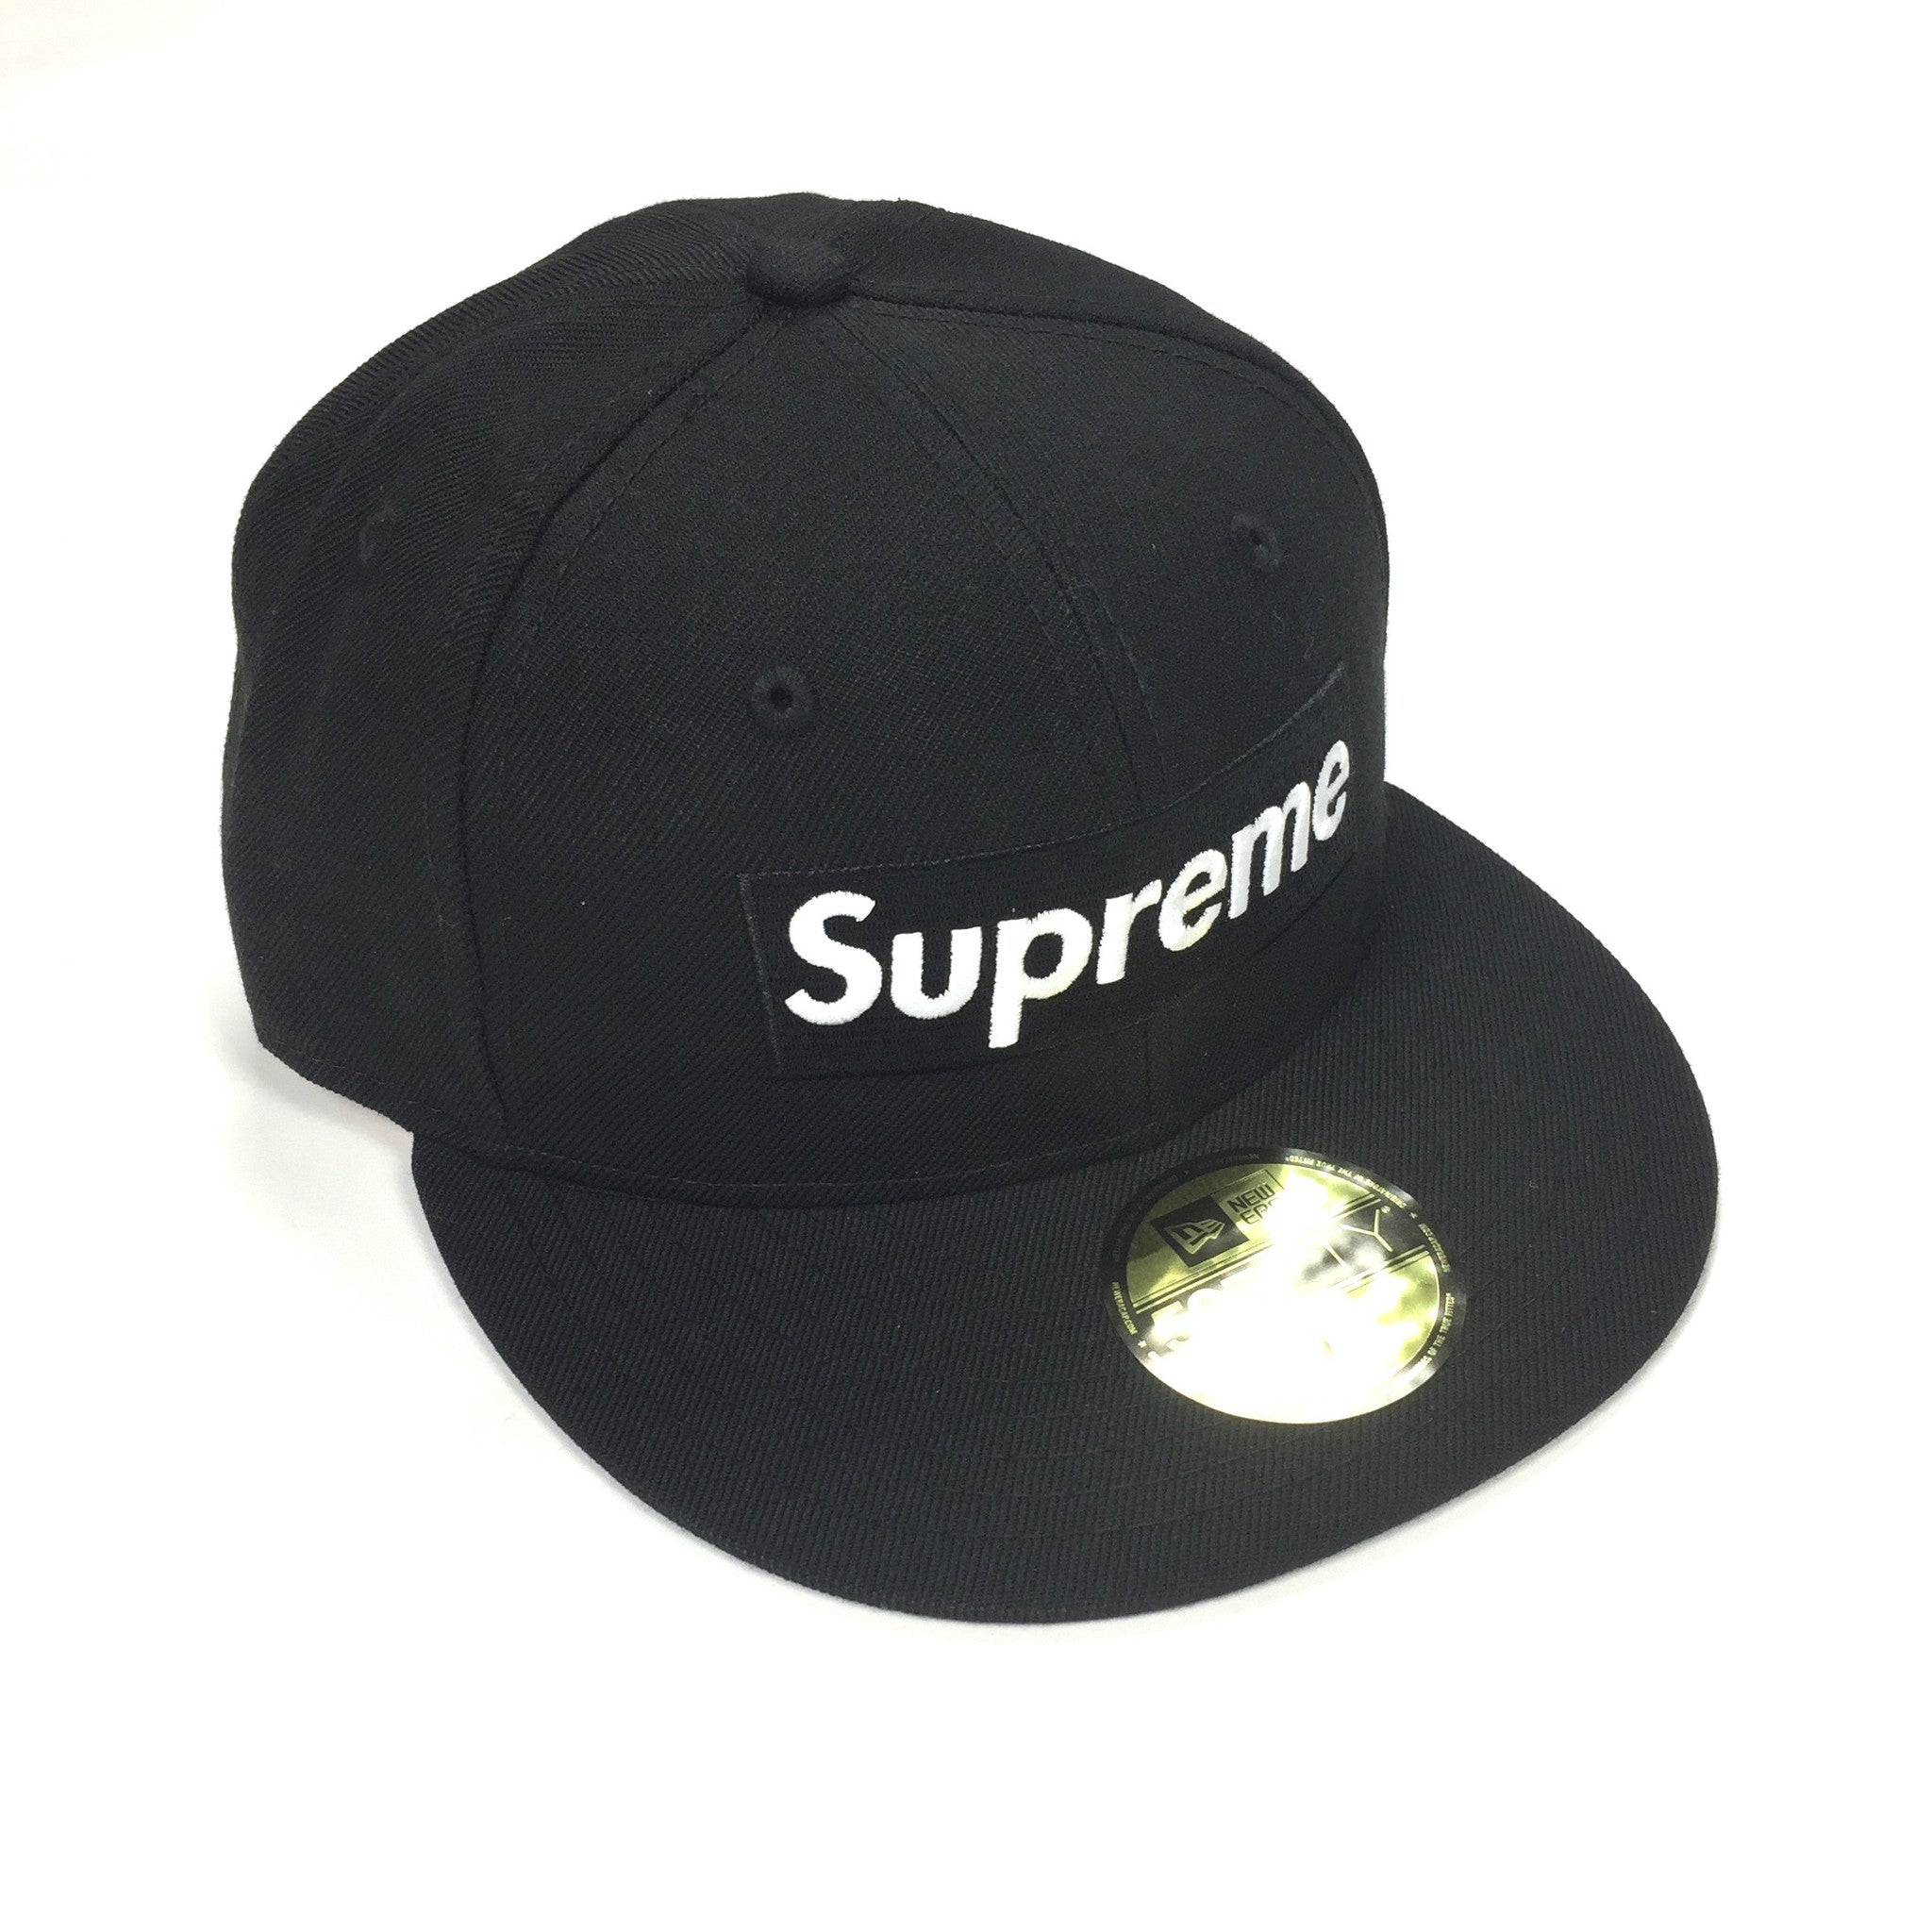 Supreme x New Era - SS17 Red Box Logo Piping Fitted 59FIFTY Hat ... e0a2b9f75972